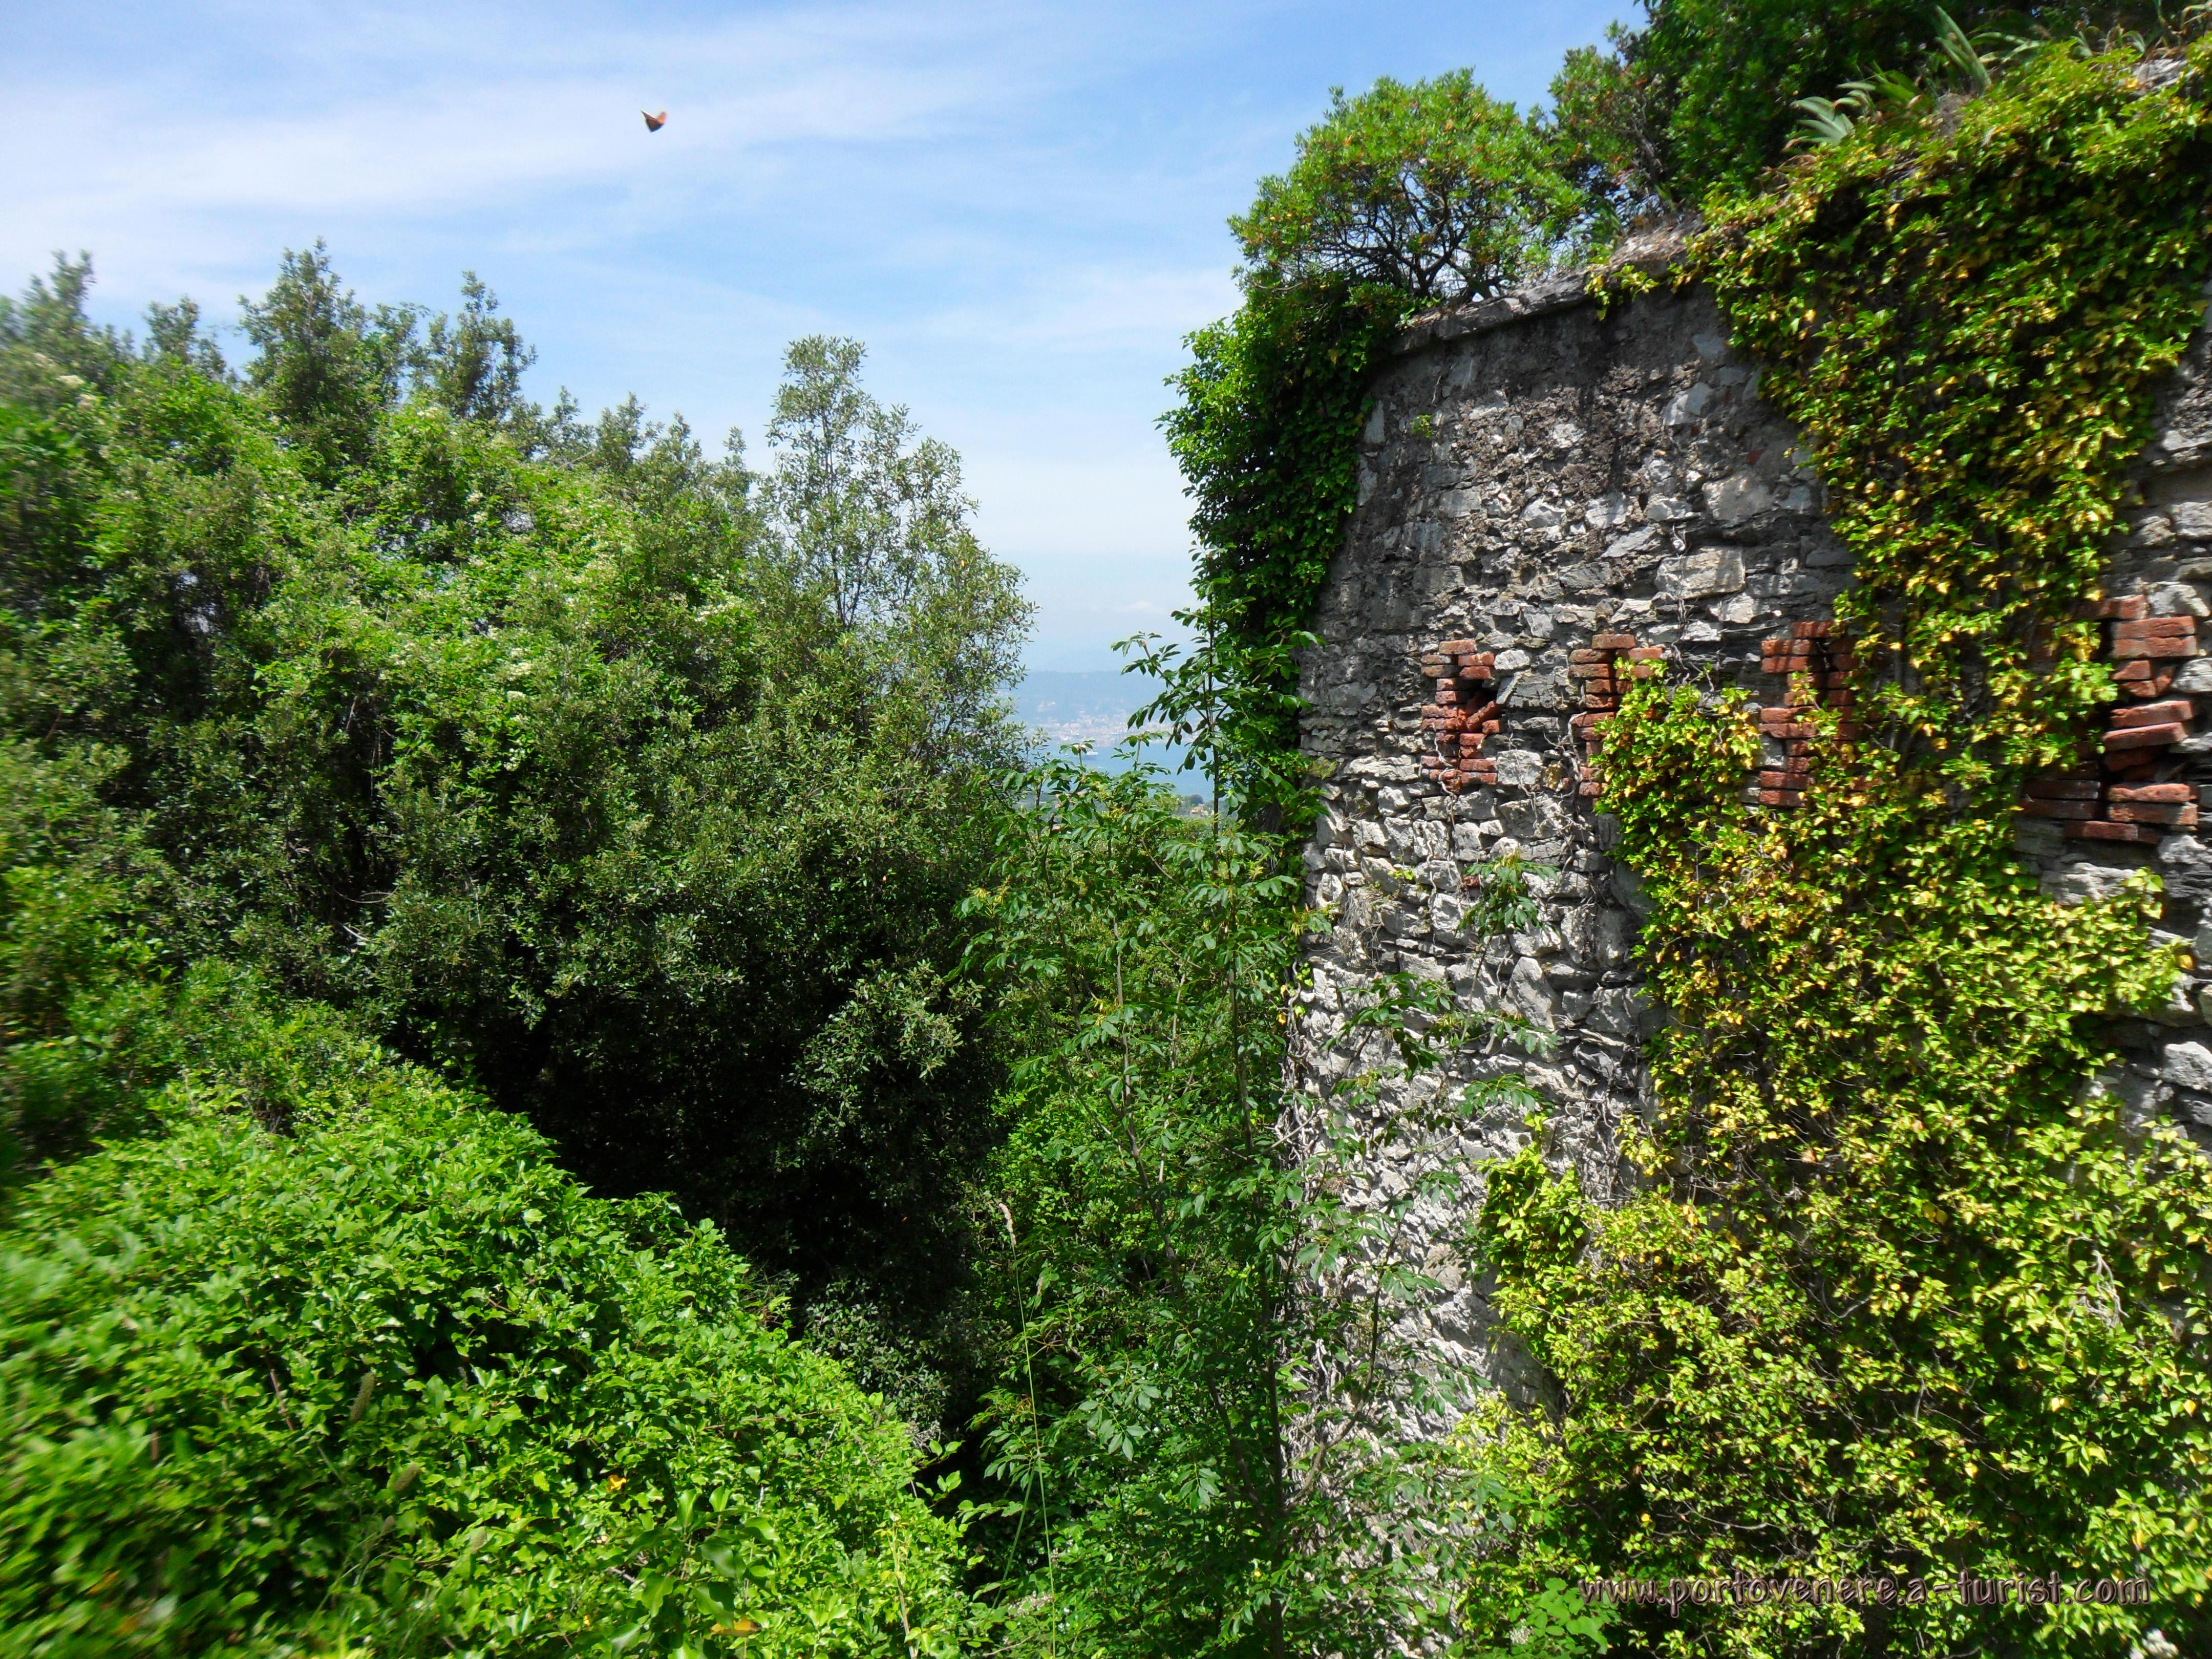 Insel Palmaria - Forte Cavour<br>4320x3240, 2.83 MB